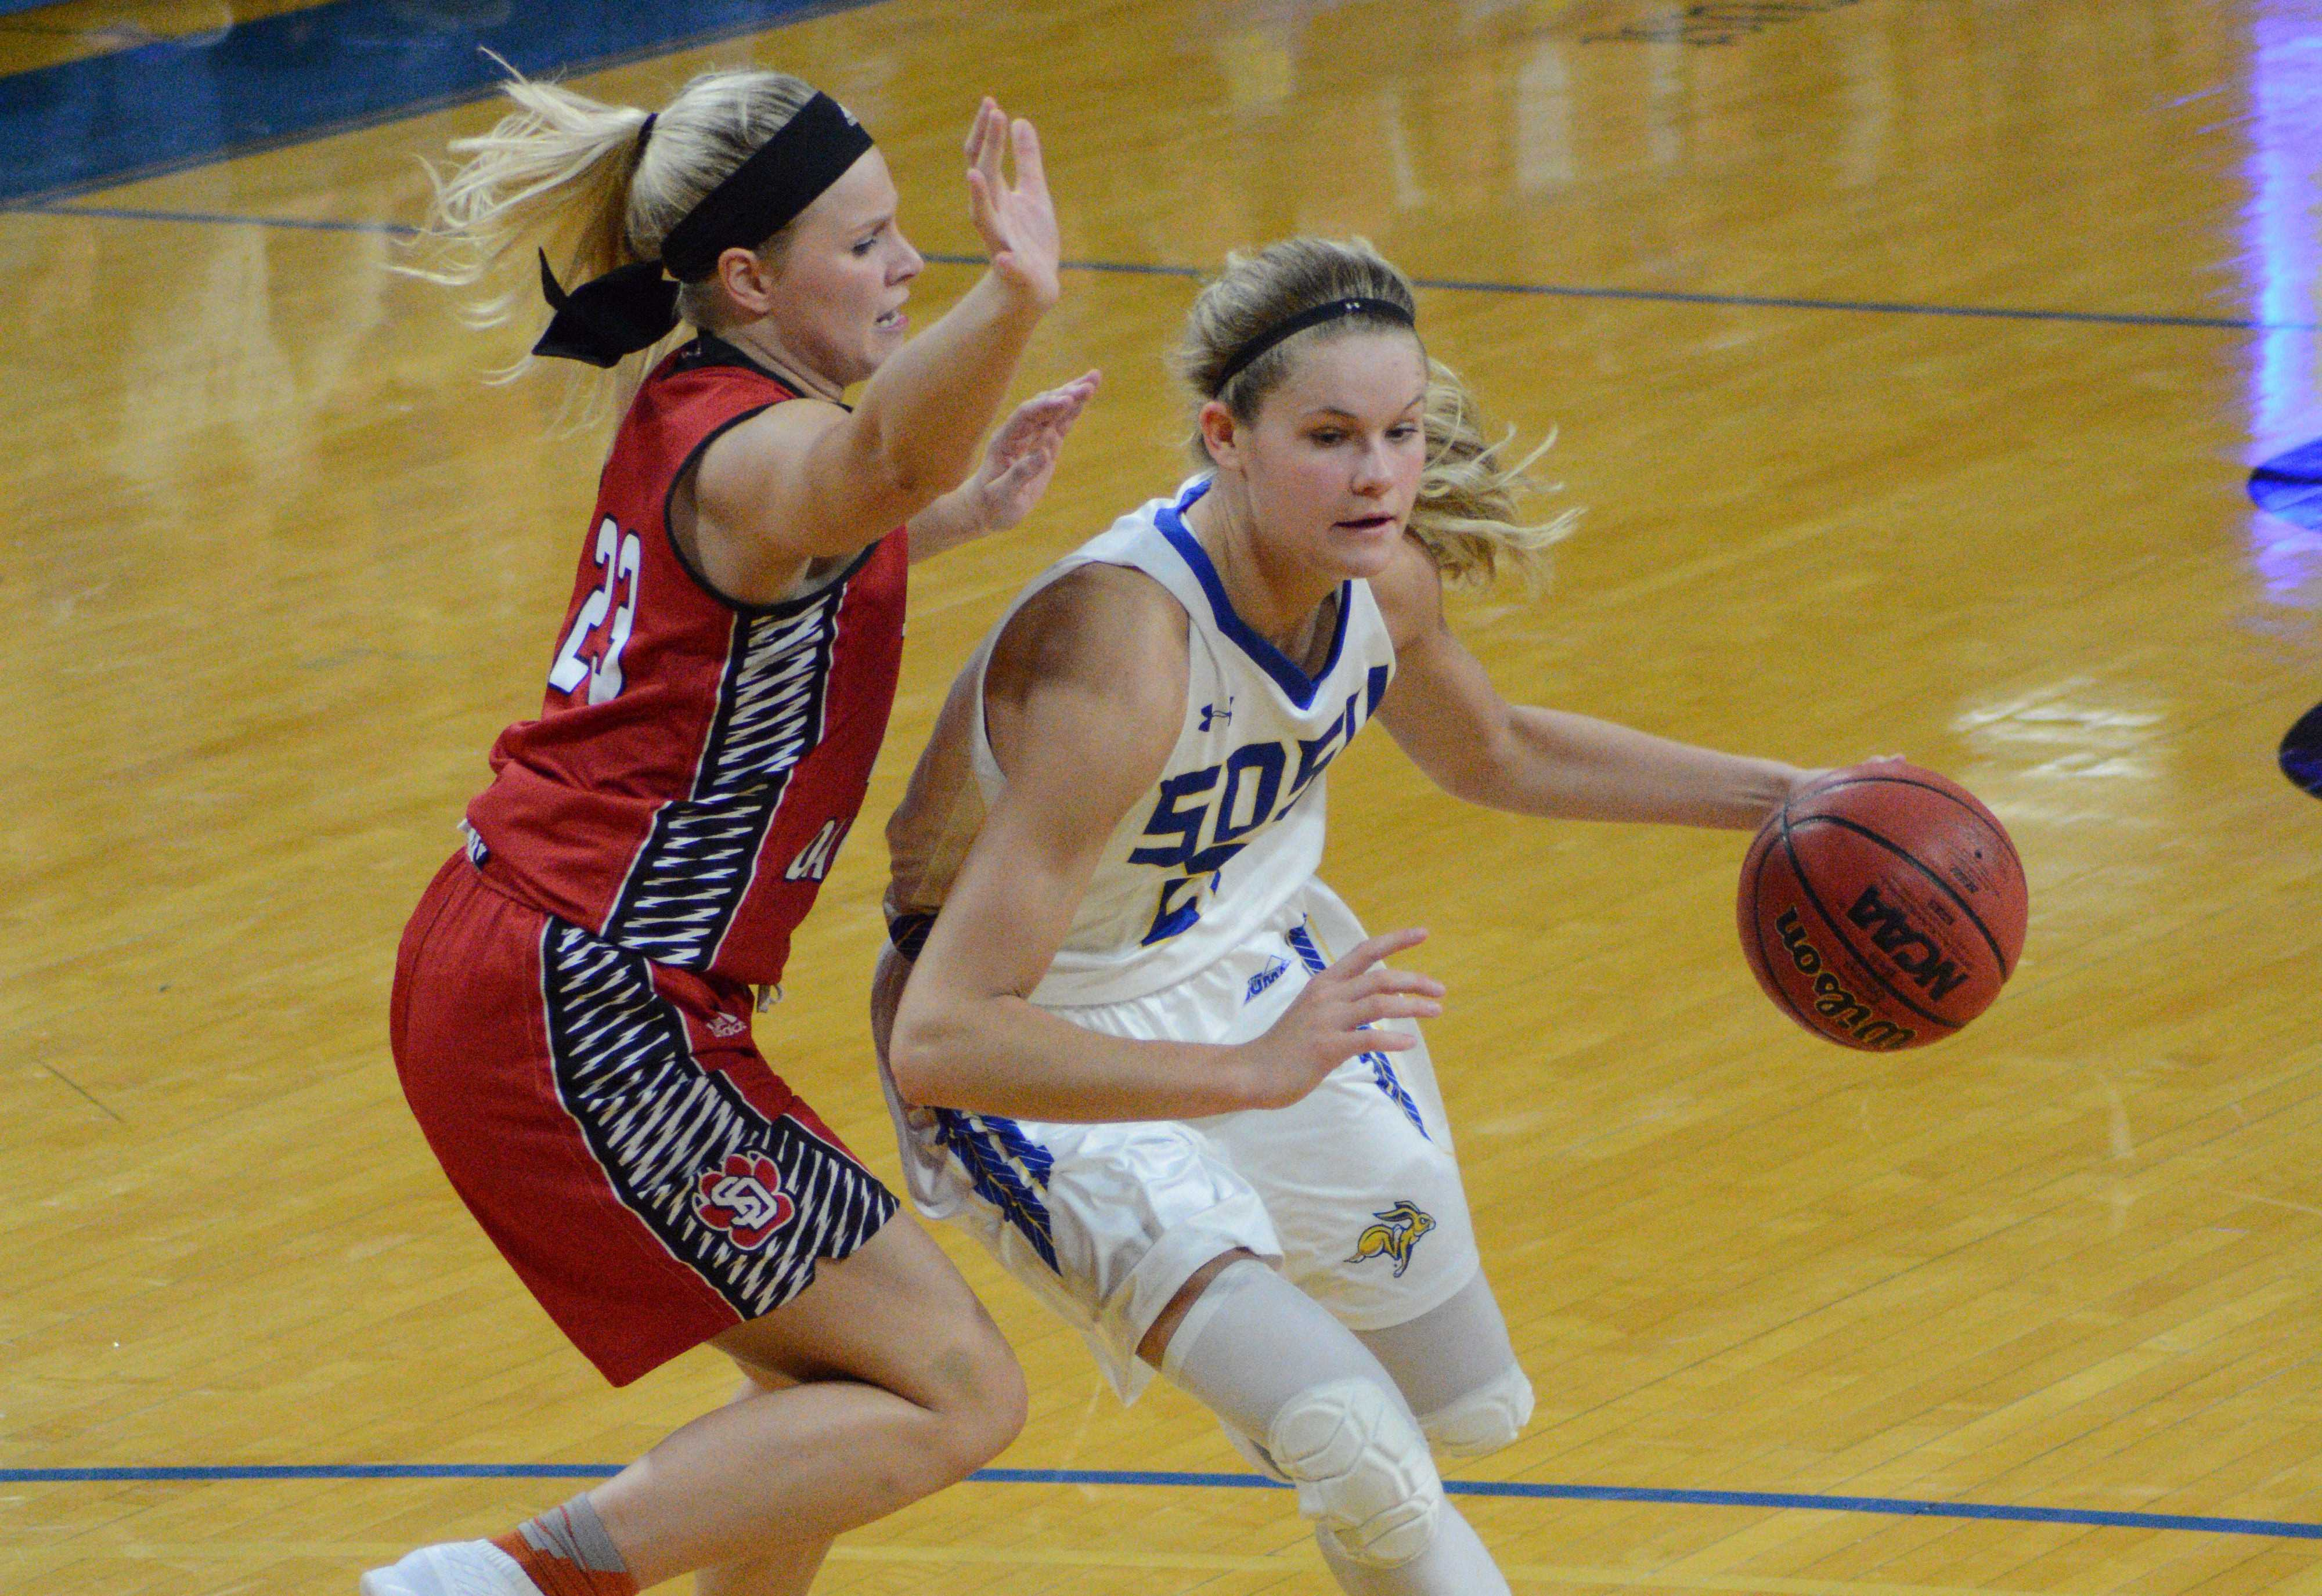 EMILY SEATON Freshman forward Tylee Irwin (21) dribbles around USD sophomore guard Madison McKeever (23). SDSU travels to Fargo, North Dakota Feb. 1 and will face NDSU.